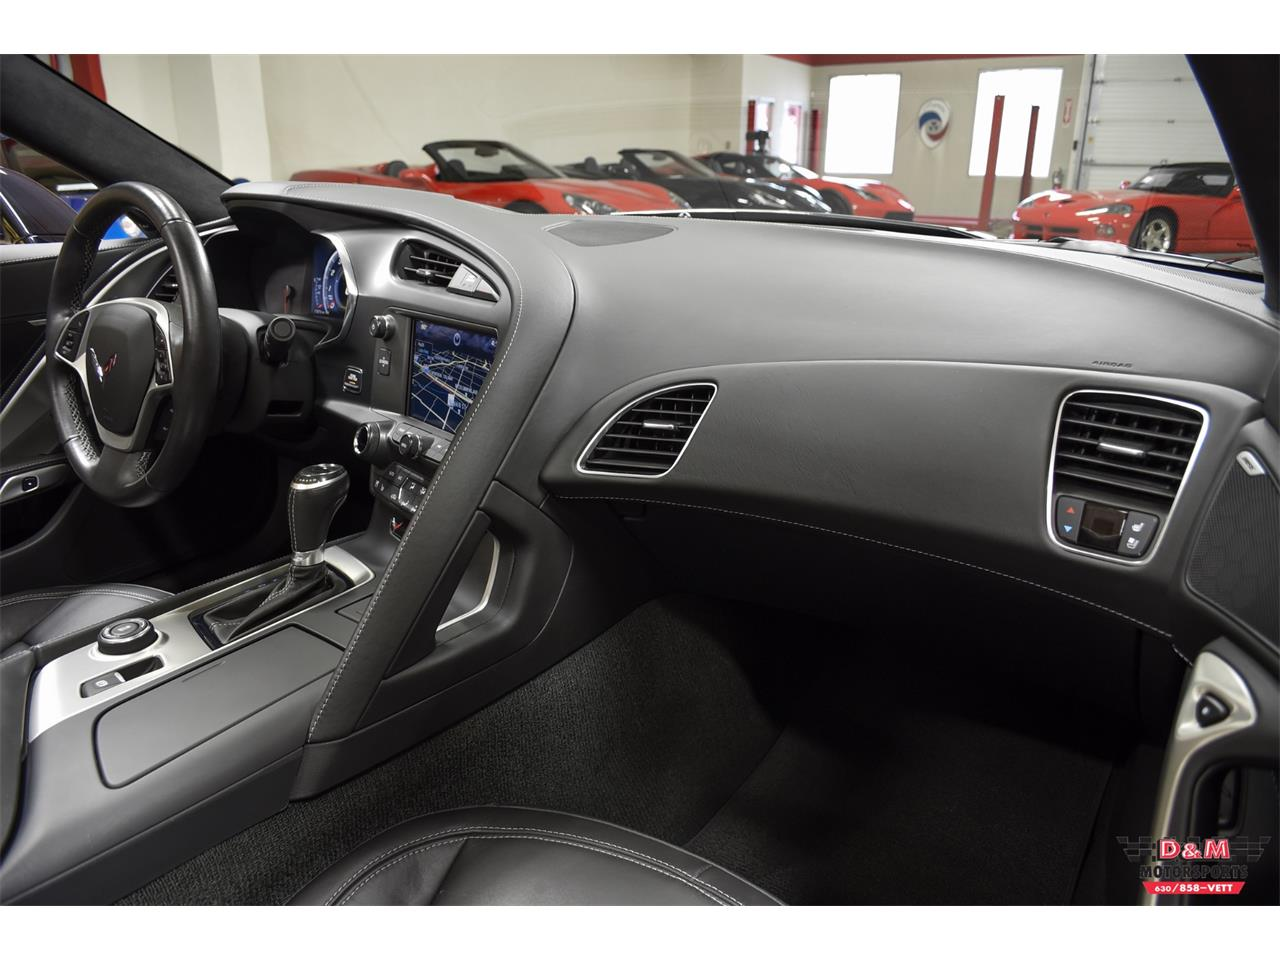 Large Picture of '15 Chevrolet Corvette located in Glen Ellyn Illinois - $45,995.00 Offered by D & M Motorsports - QGAK